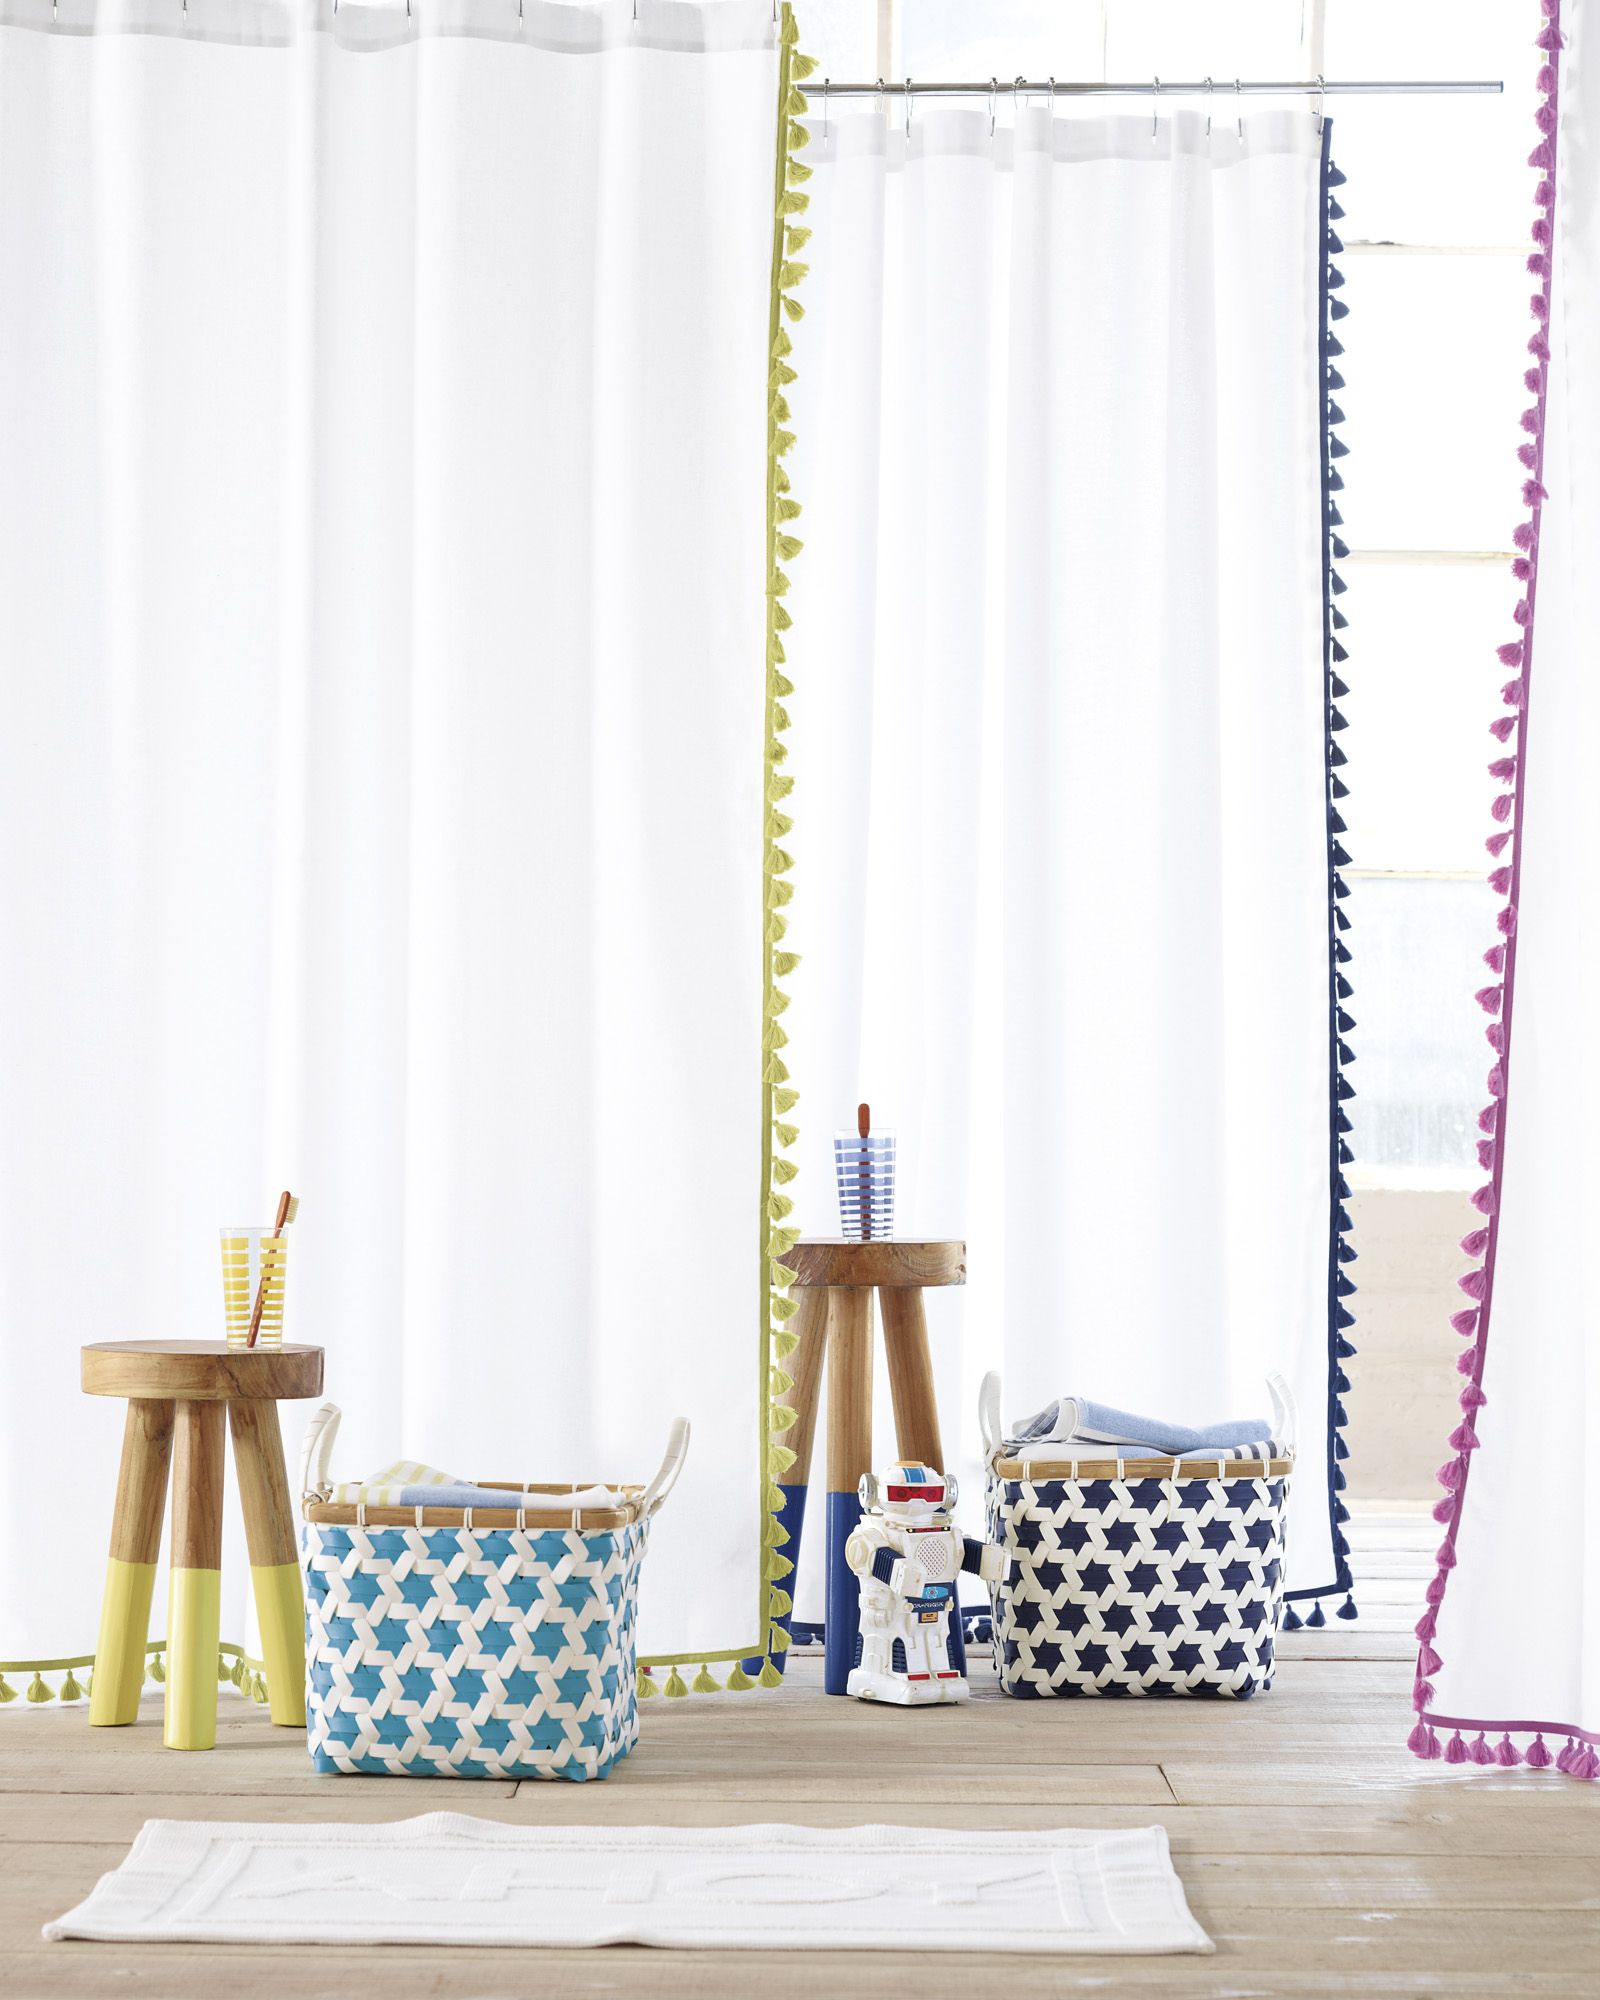 Shop The French Tassel Shower Curtain And Rest Of Our Designer Curtains At Serena Lily